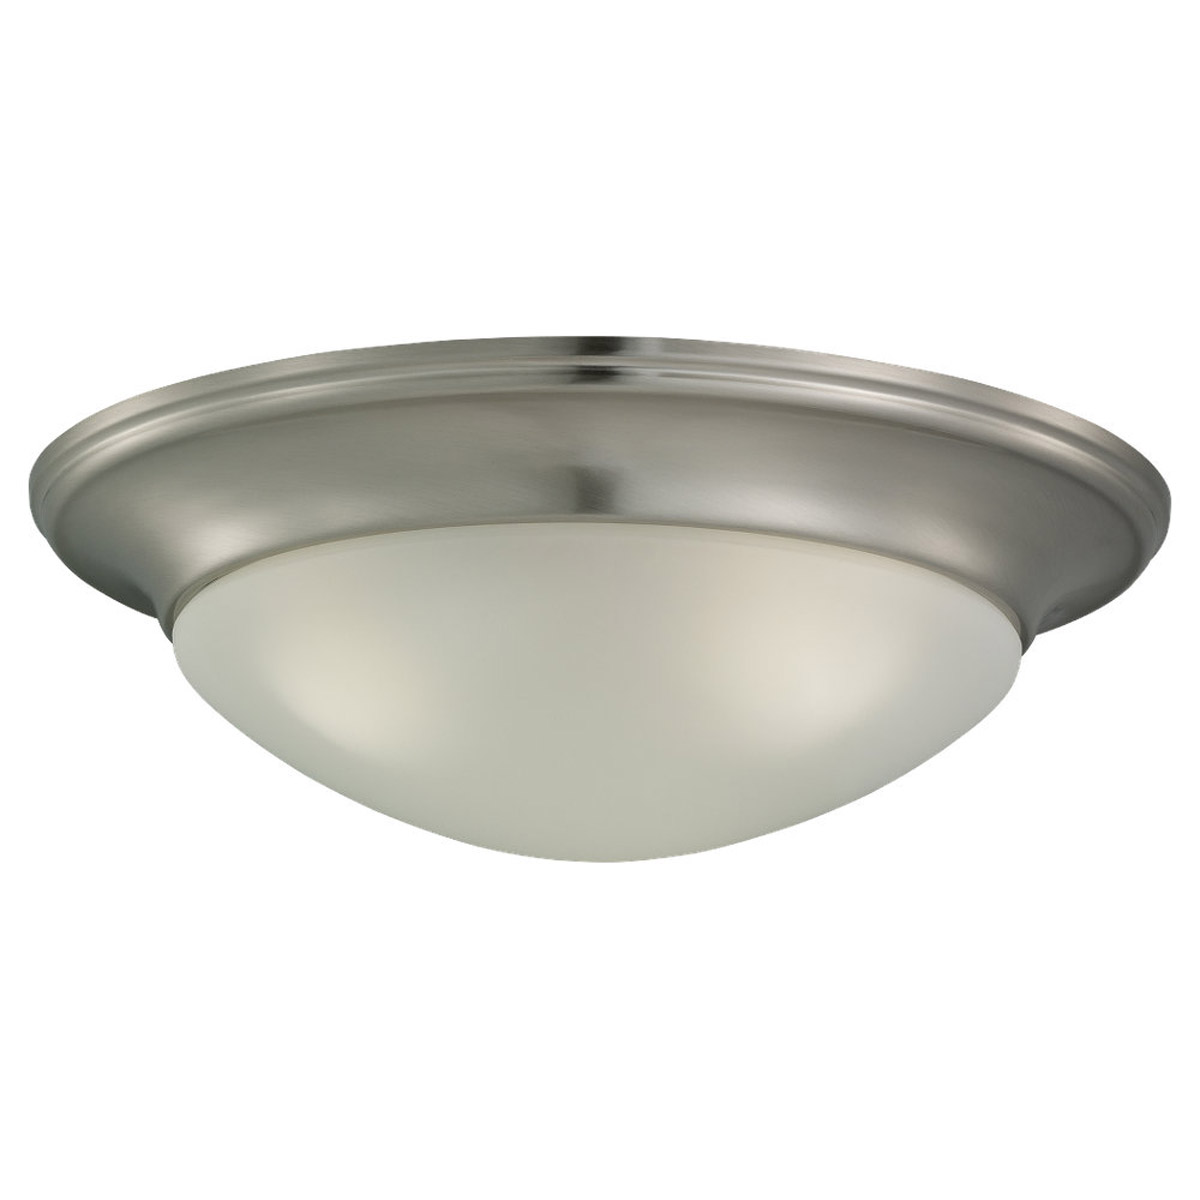 Sea Gull Lighting Nash 3 Light Flush Mount in Brushed Nickel 79436BLE-962